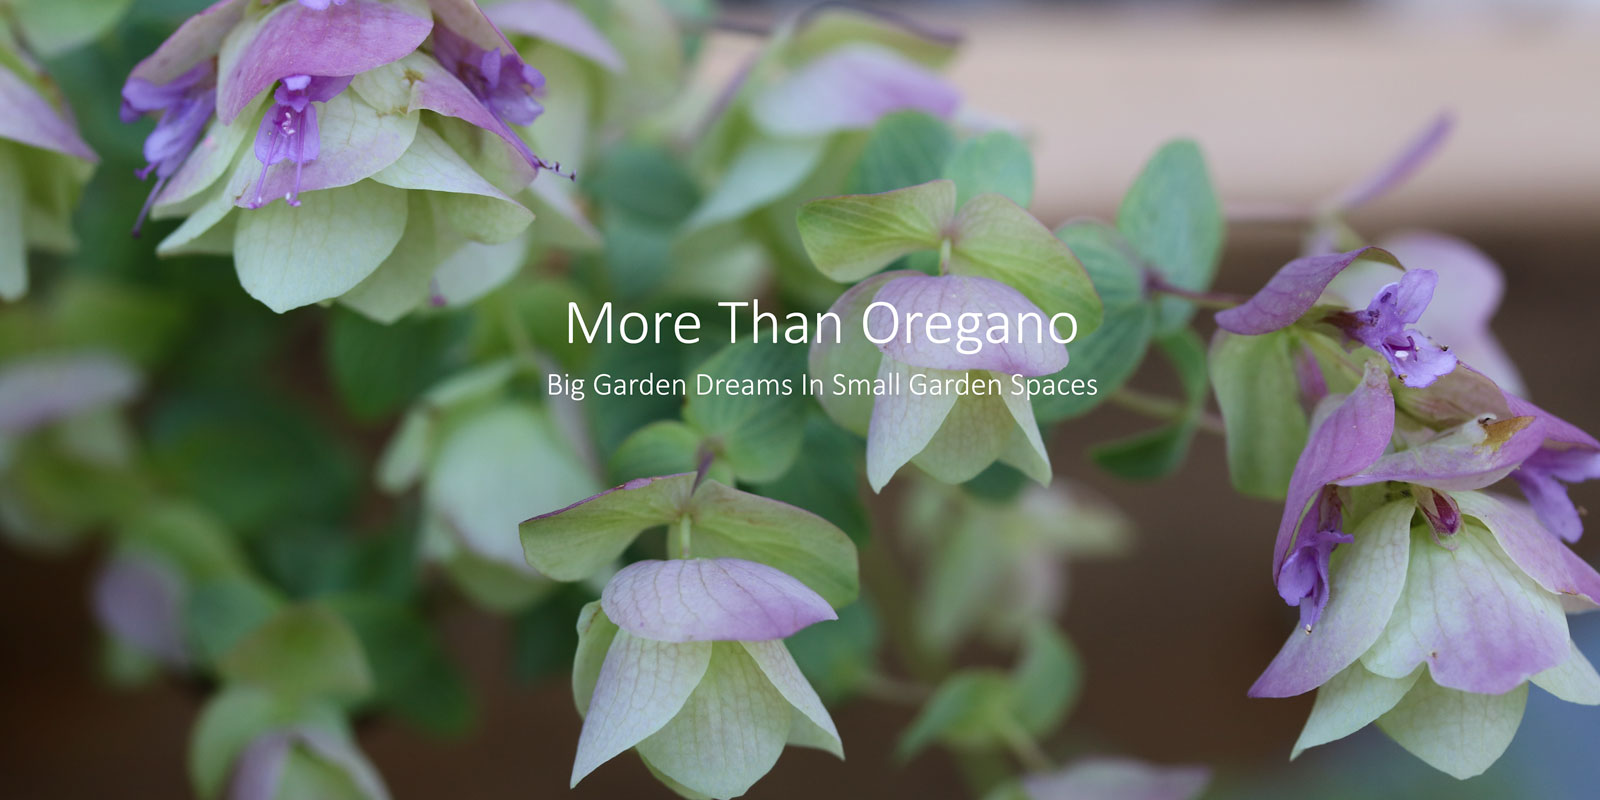 More Than Oregano Blog on the Still Growing gardening podcast 6ftmama blog